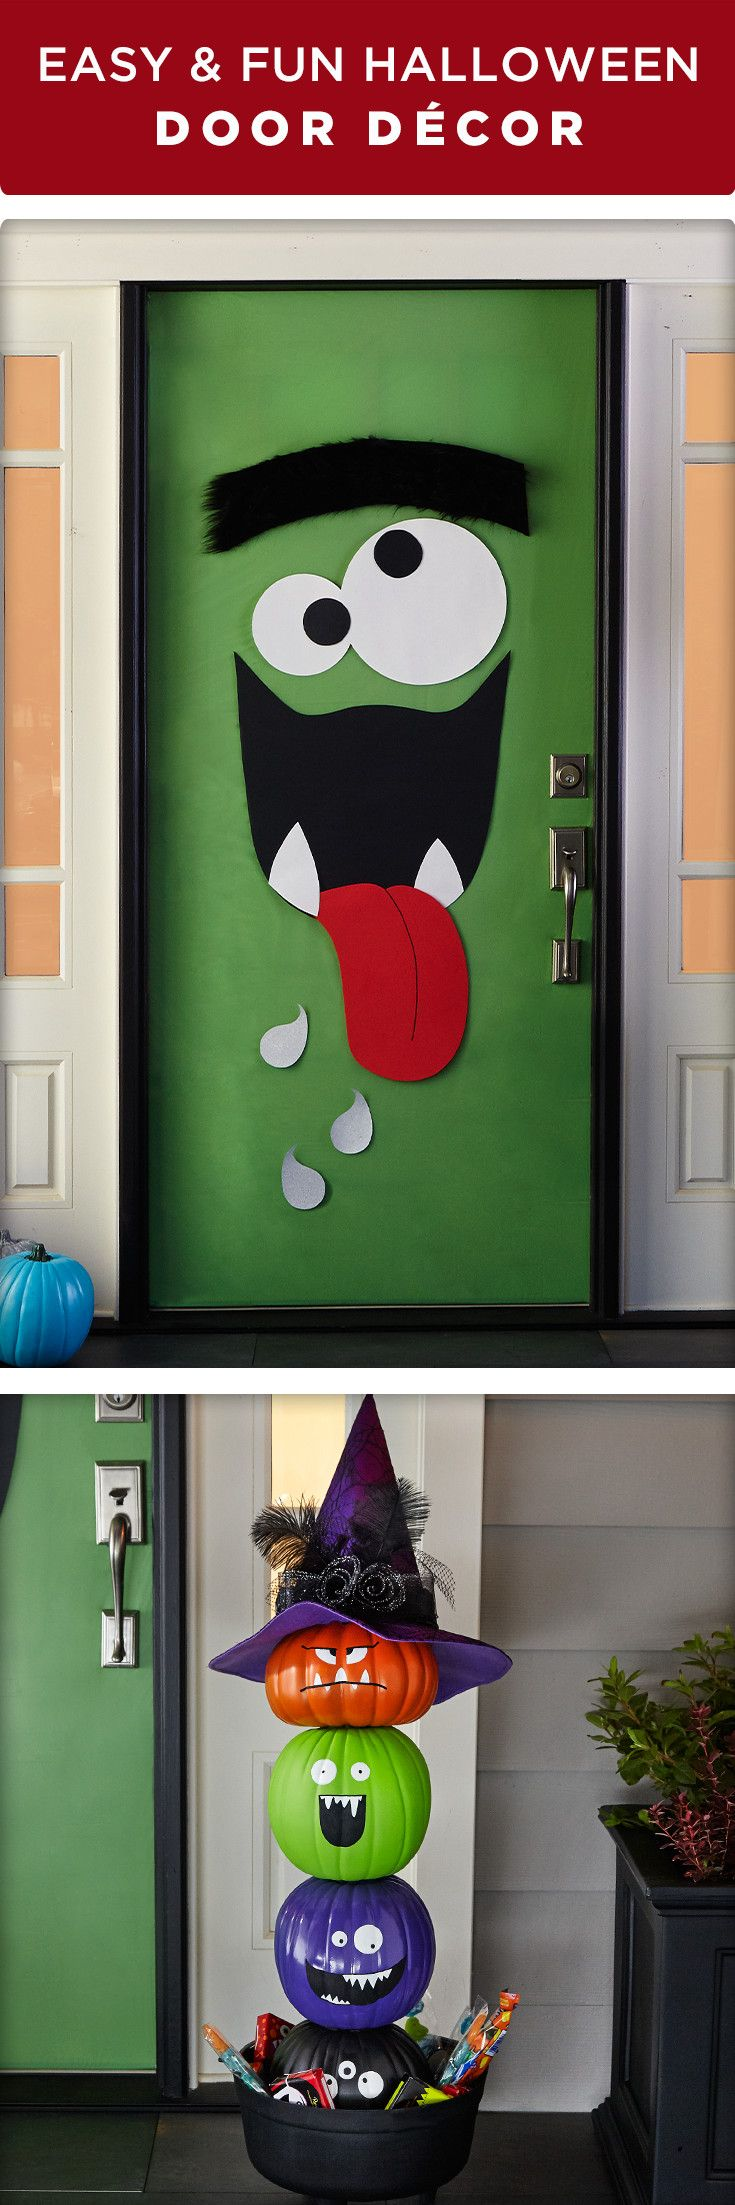 decorate your front door for trick or treaters this halloween these dcor ideas are easy - Michaels Halloween Decorations